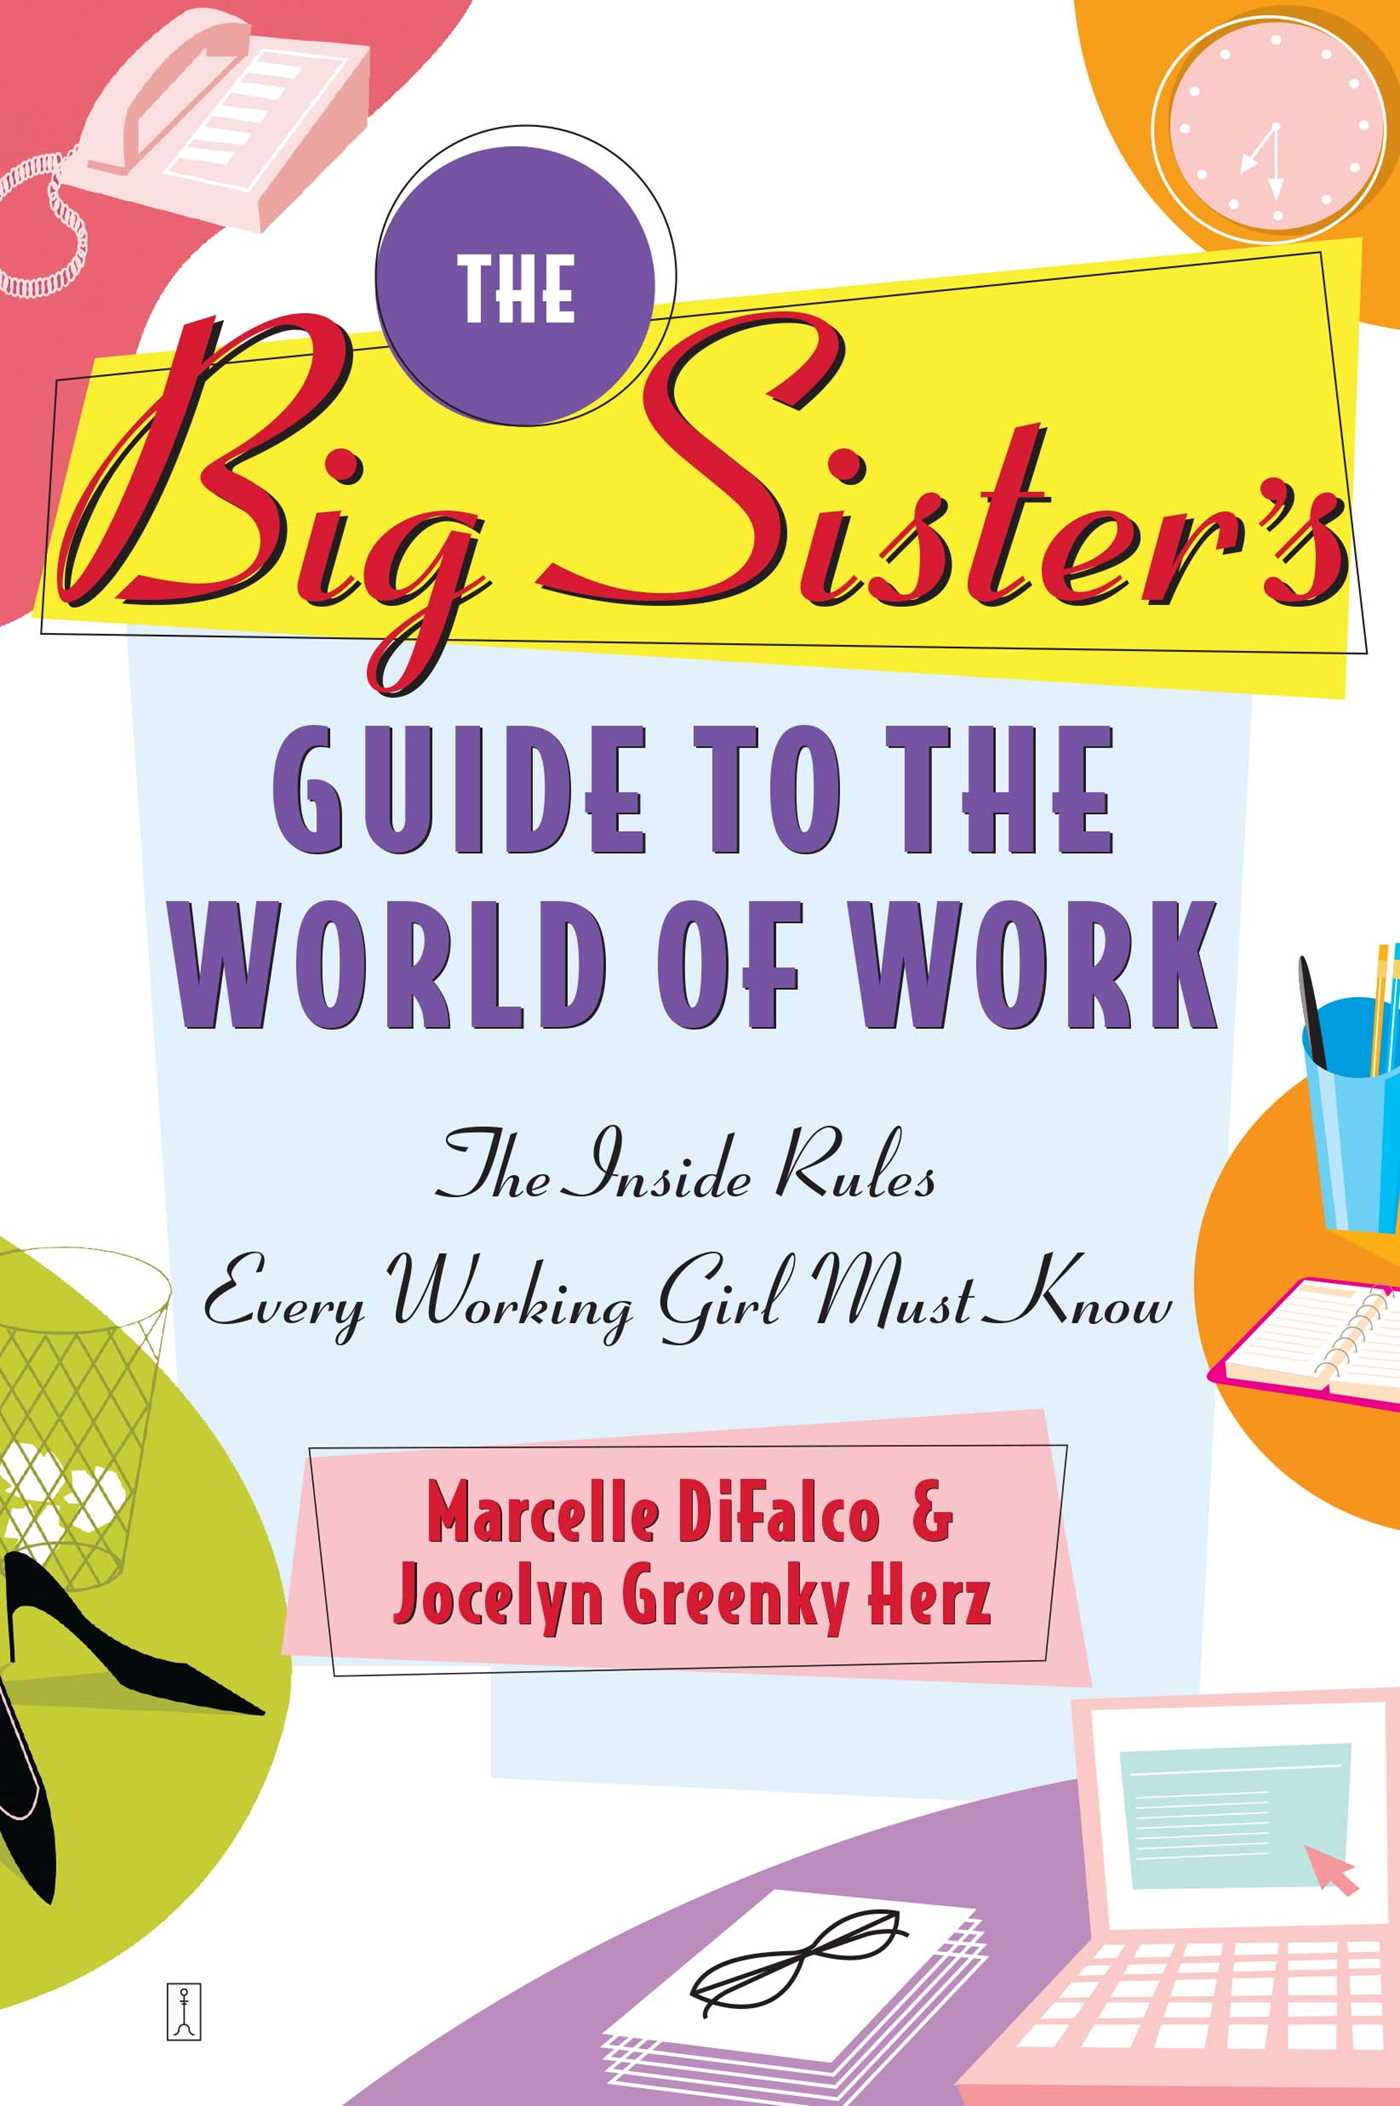 The big sisters guide to the world of work 9780743247108 hr